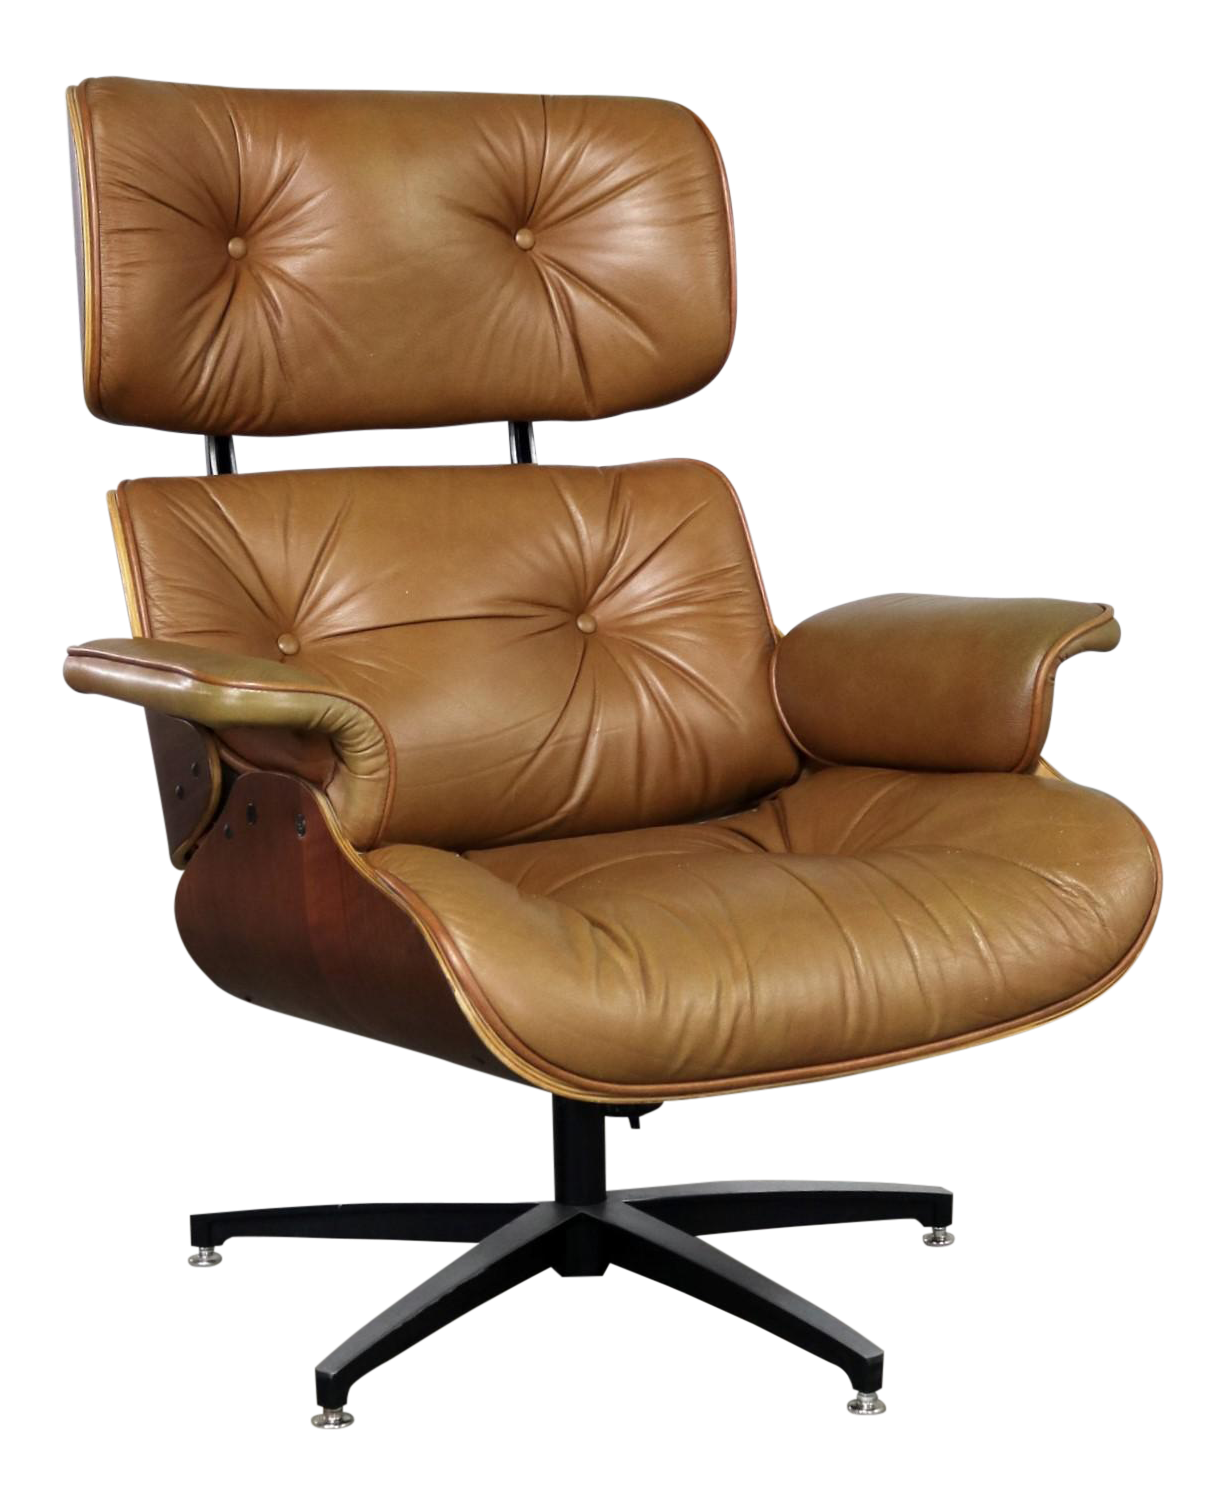 Merveilleux Mid Century Modern Lounge Chair Attributed To Selig Plycraft And In The  Style Of Eames